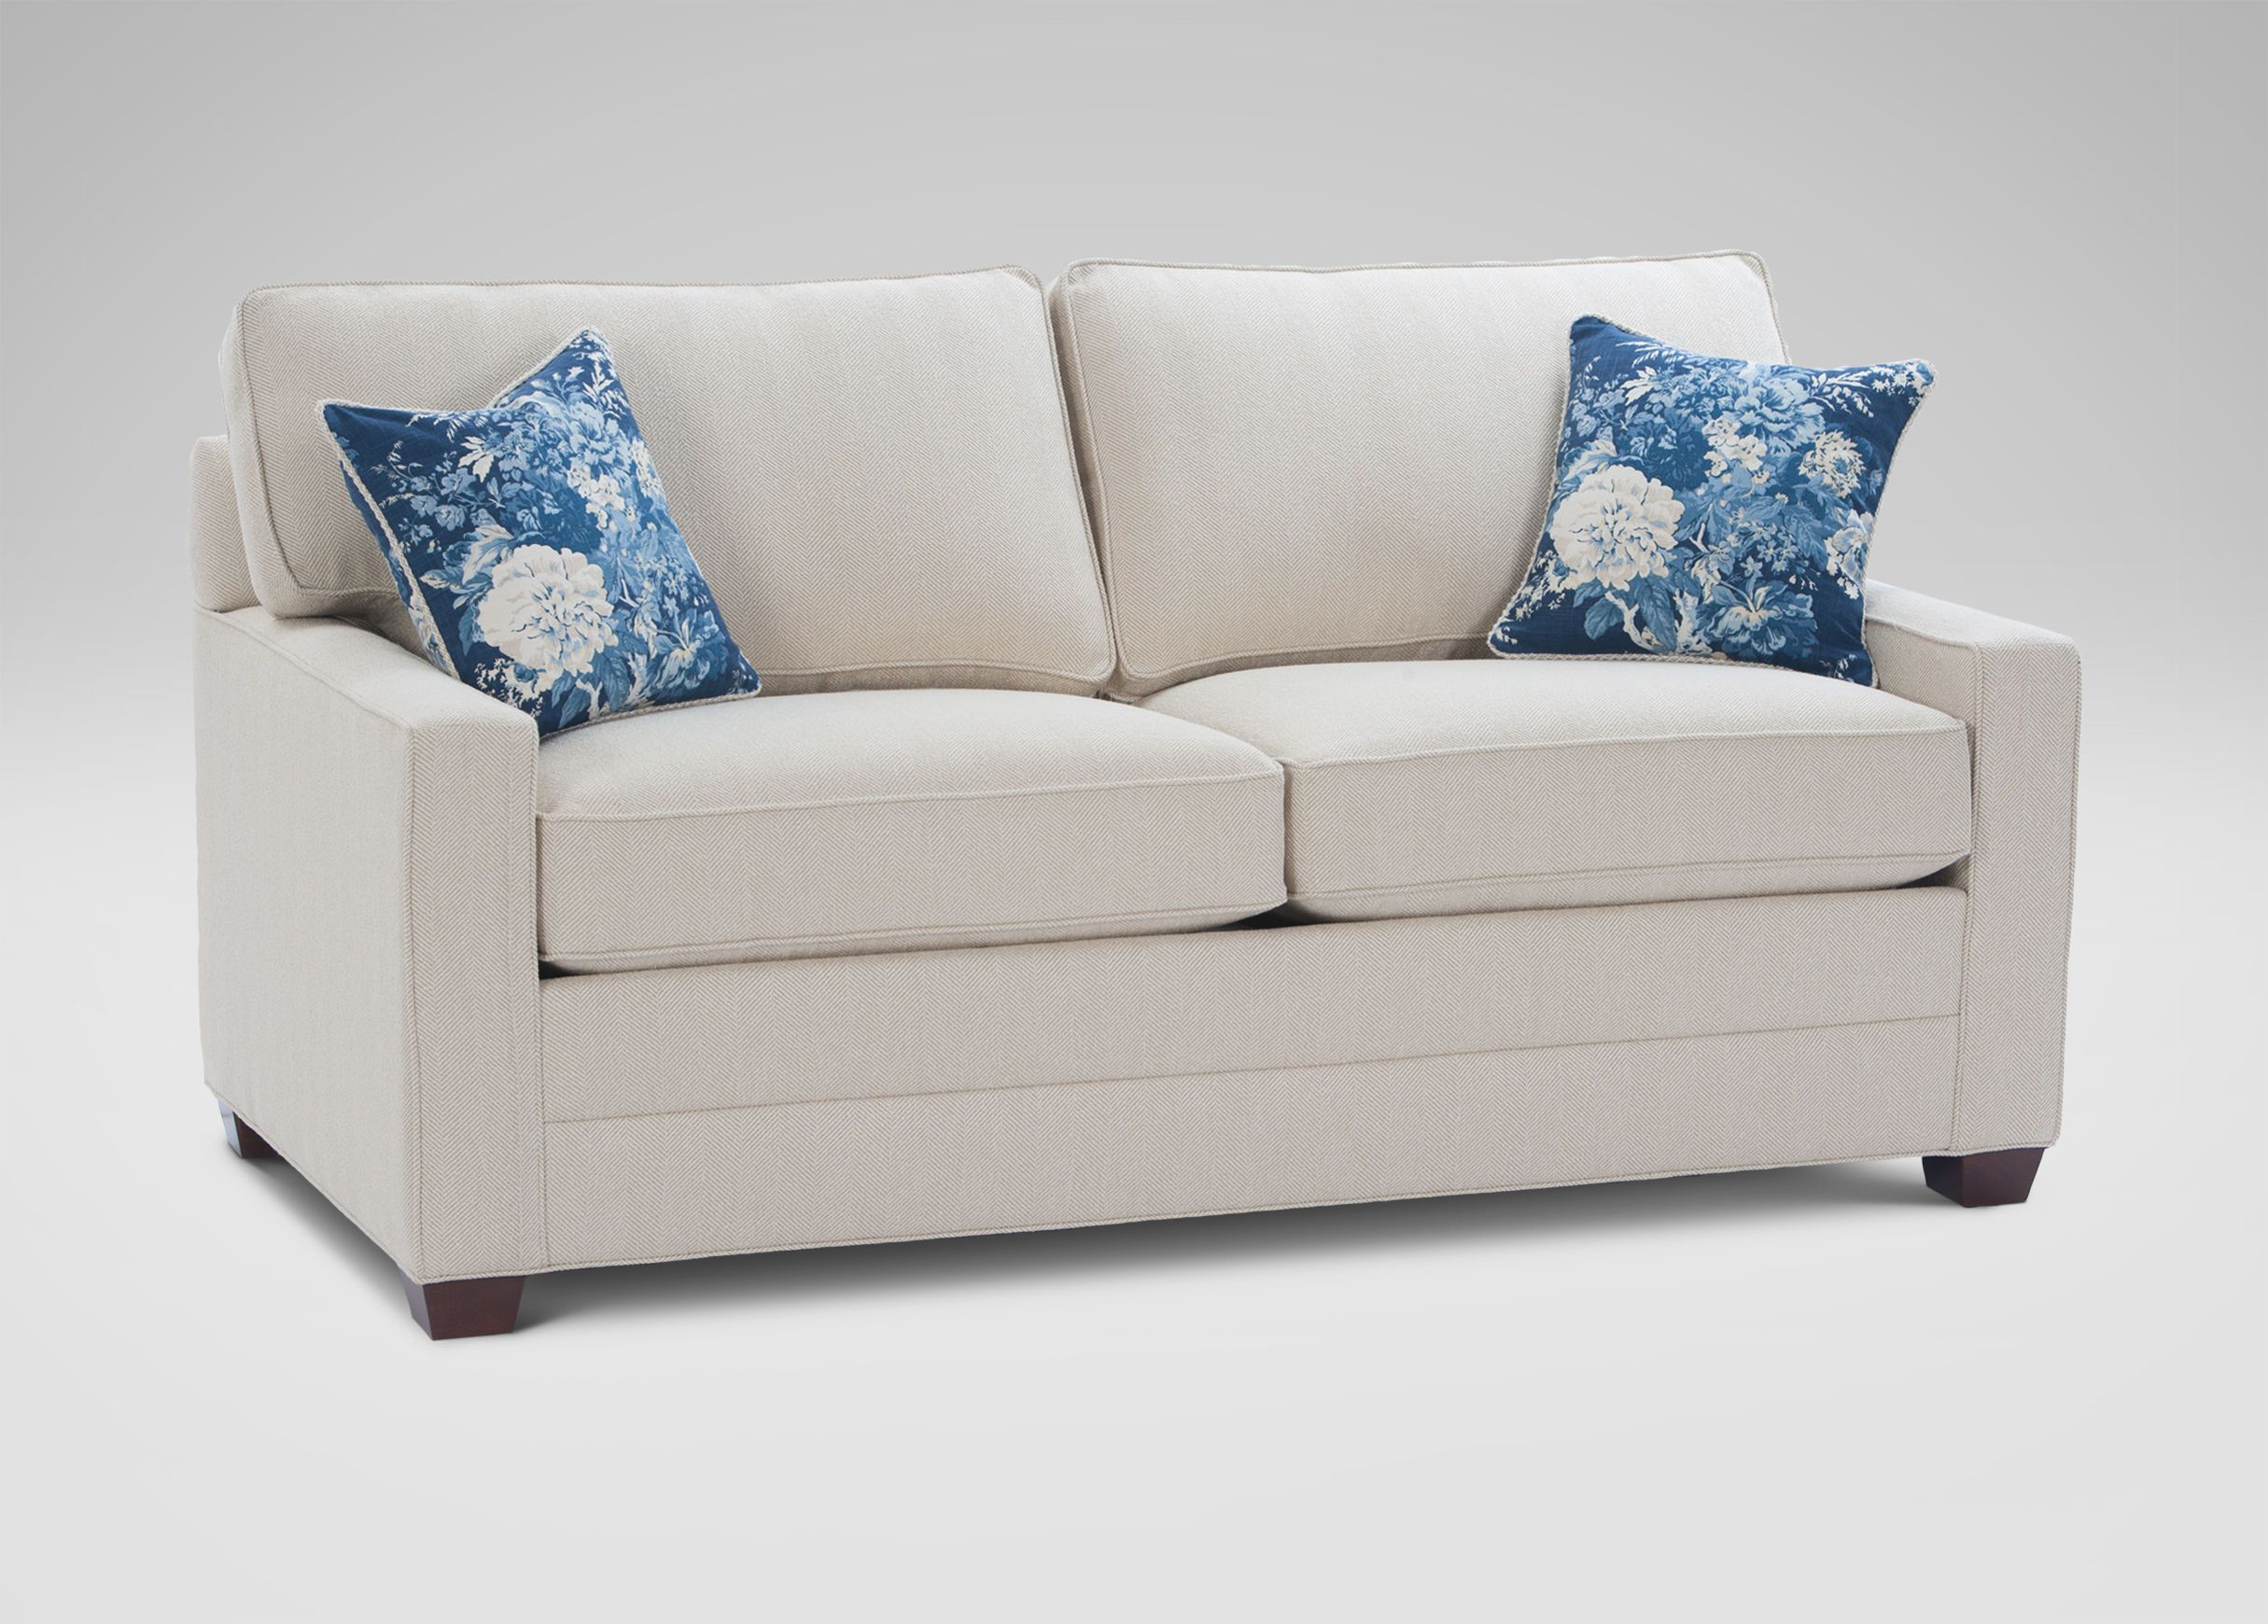 Bennett Track Arm Sofa clean lines min exposed feet very fy